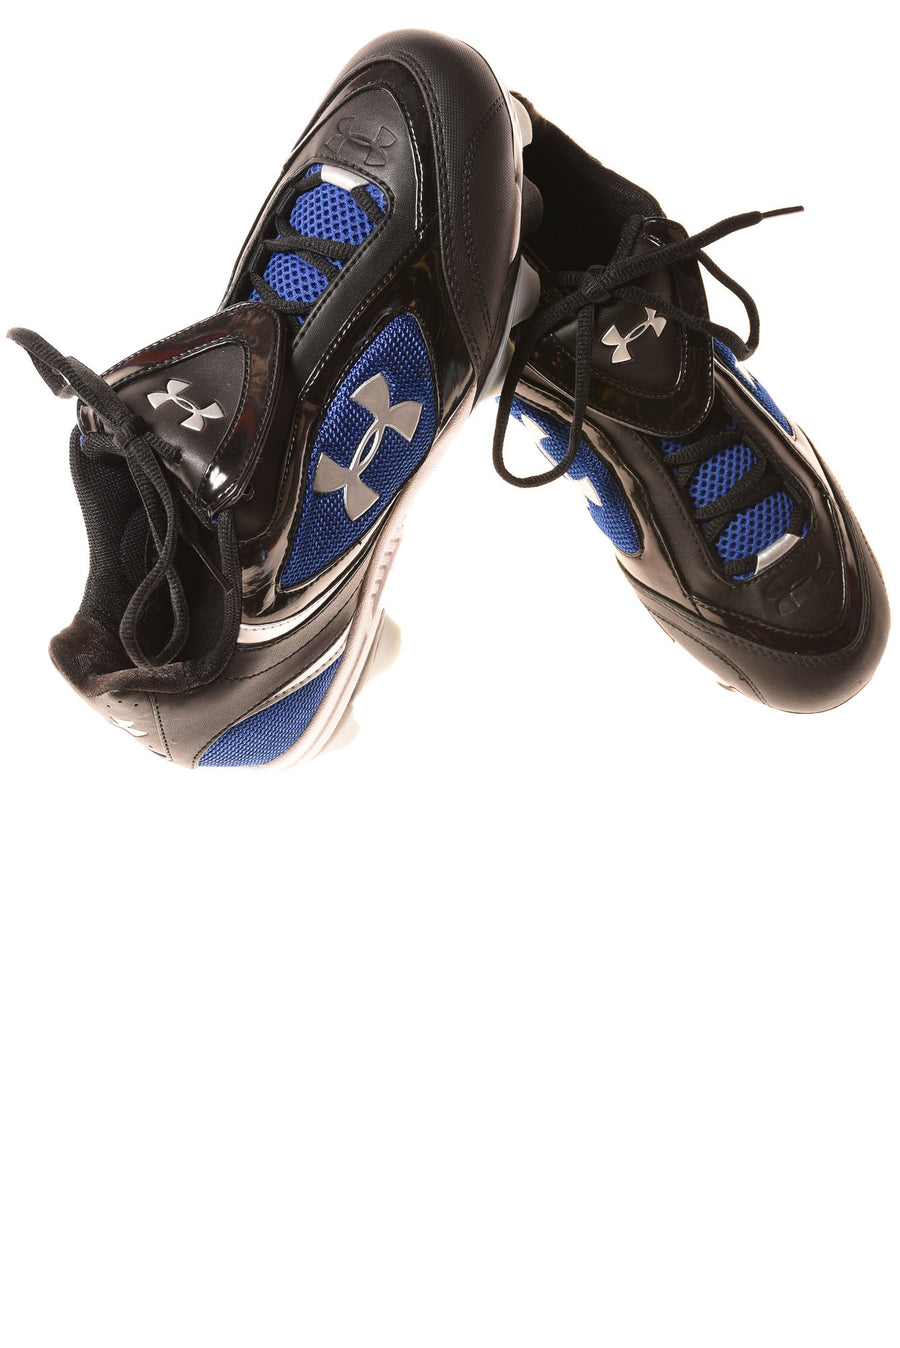 USED Under Armour Women's Cleats 8.5 Black & Blue